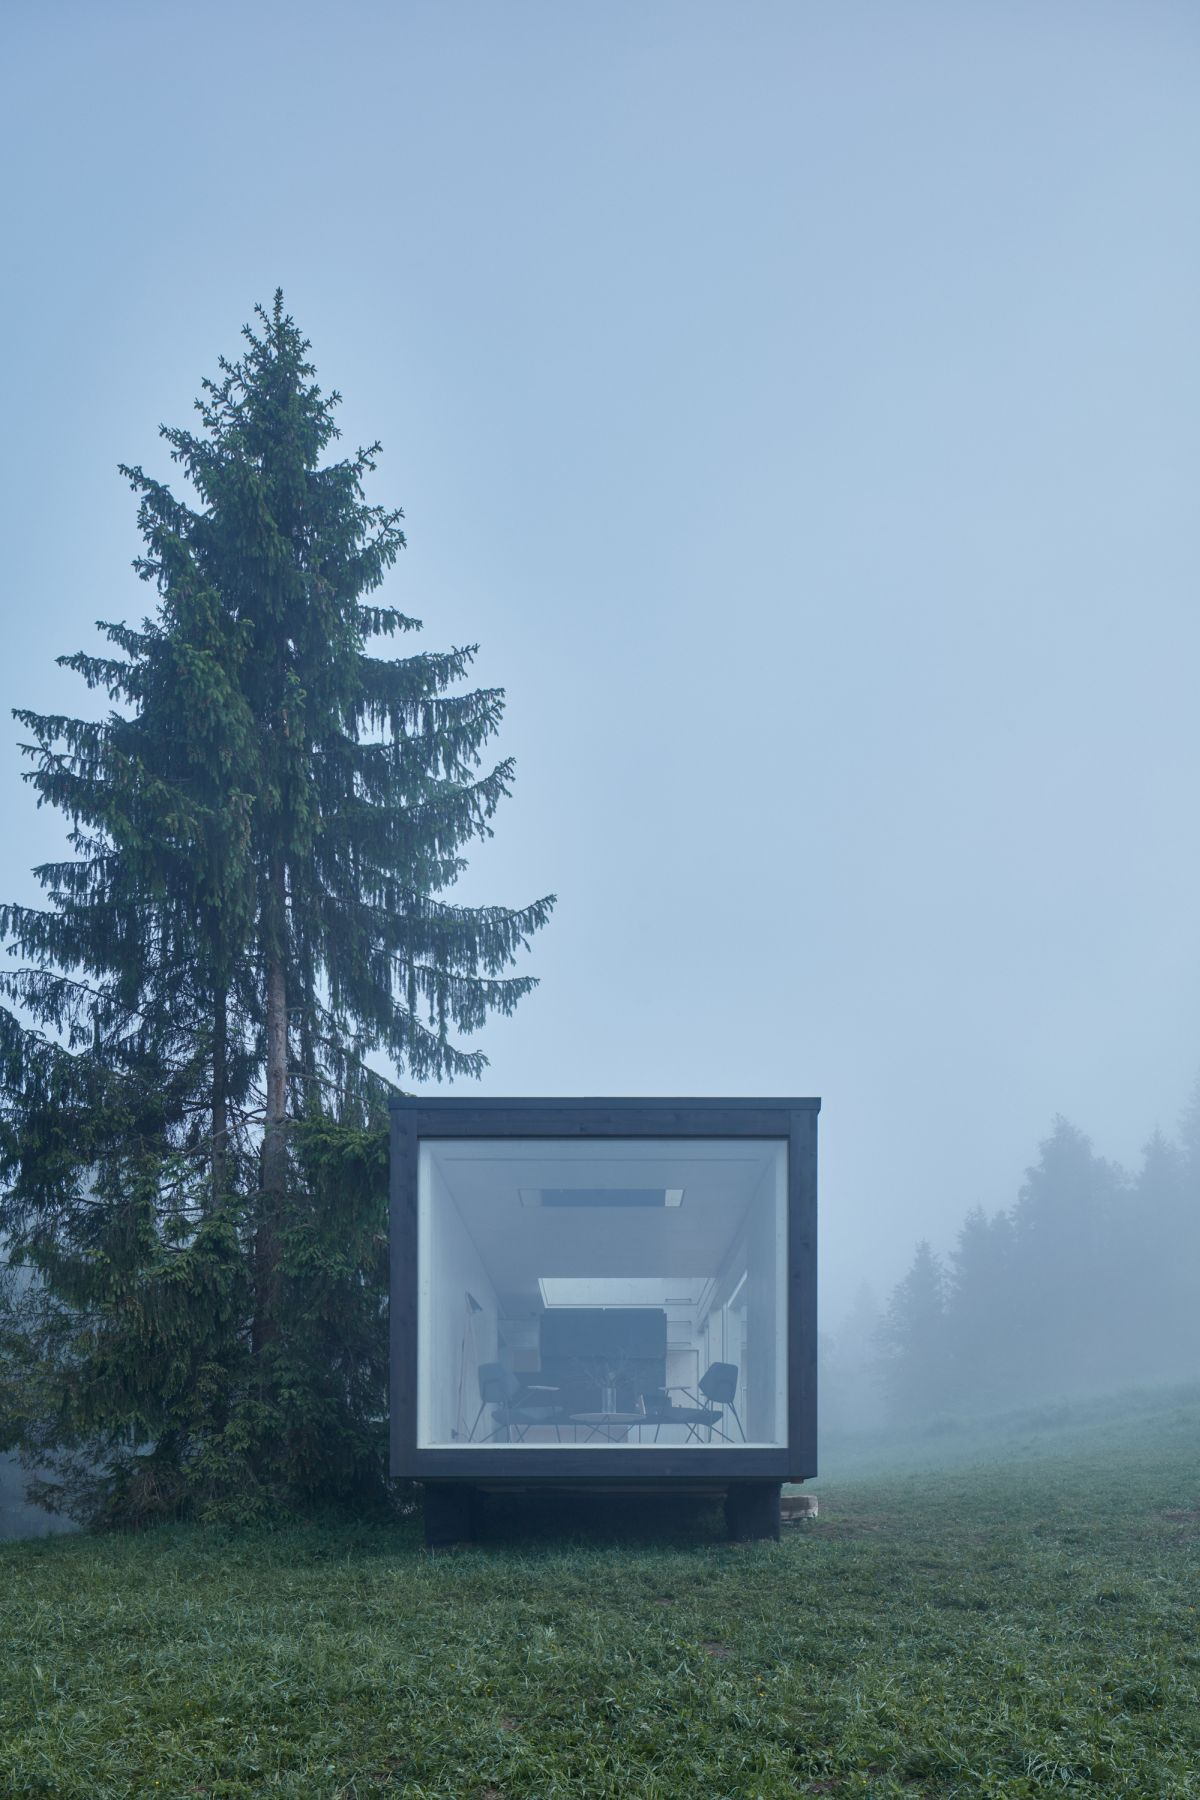 The design of the cabin emphasis the views and the interaction between user and nature